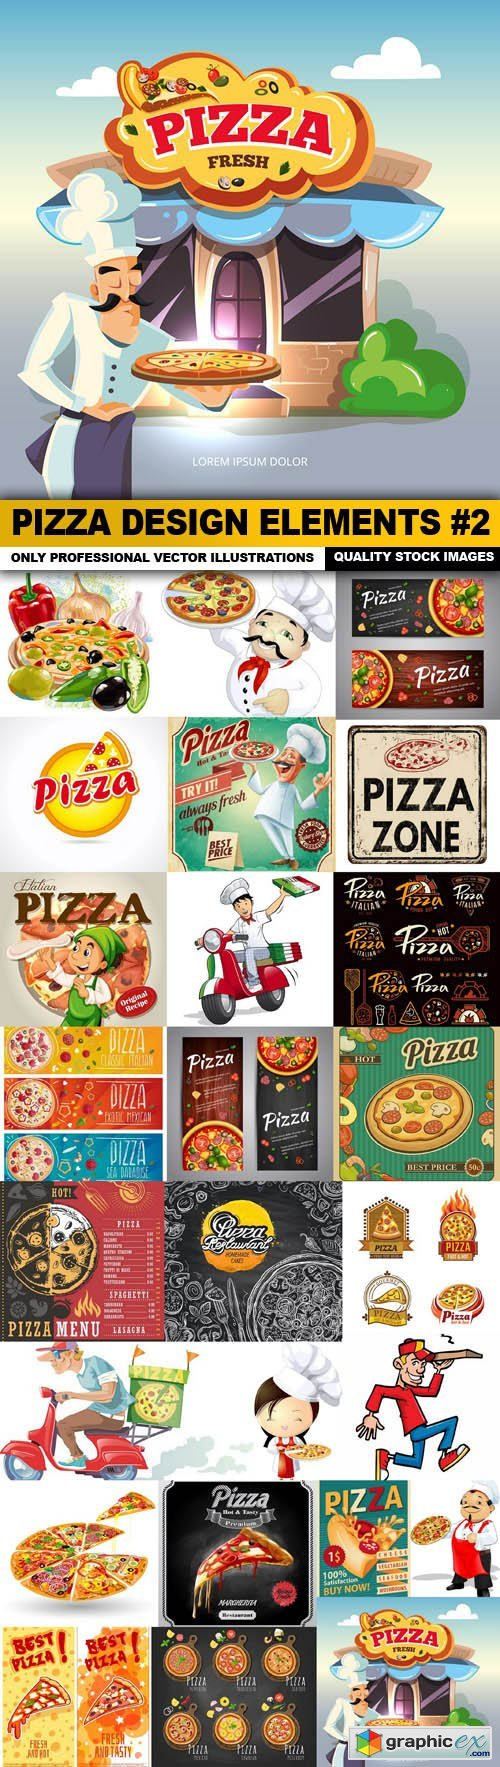 Pizza Design Elements #2 - 25 Vector